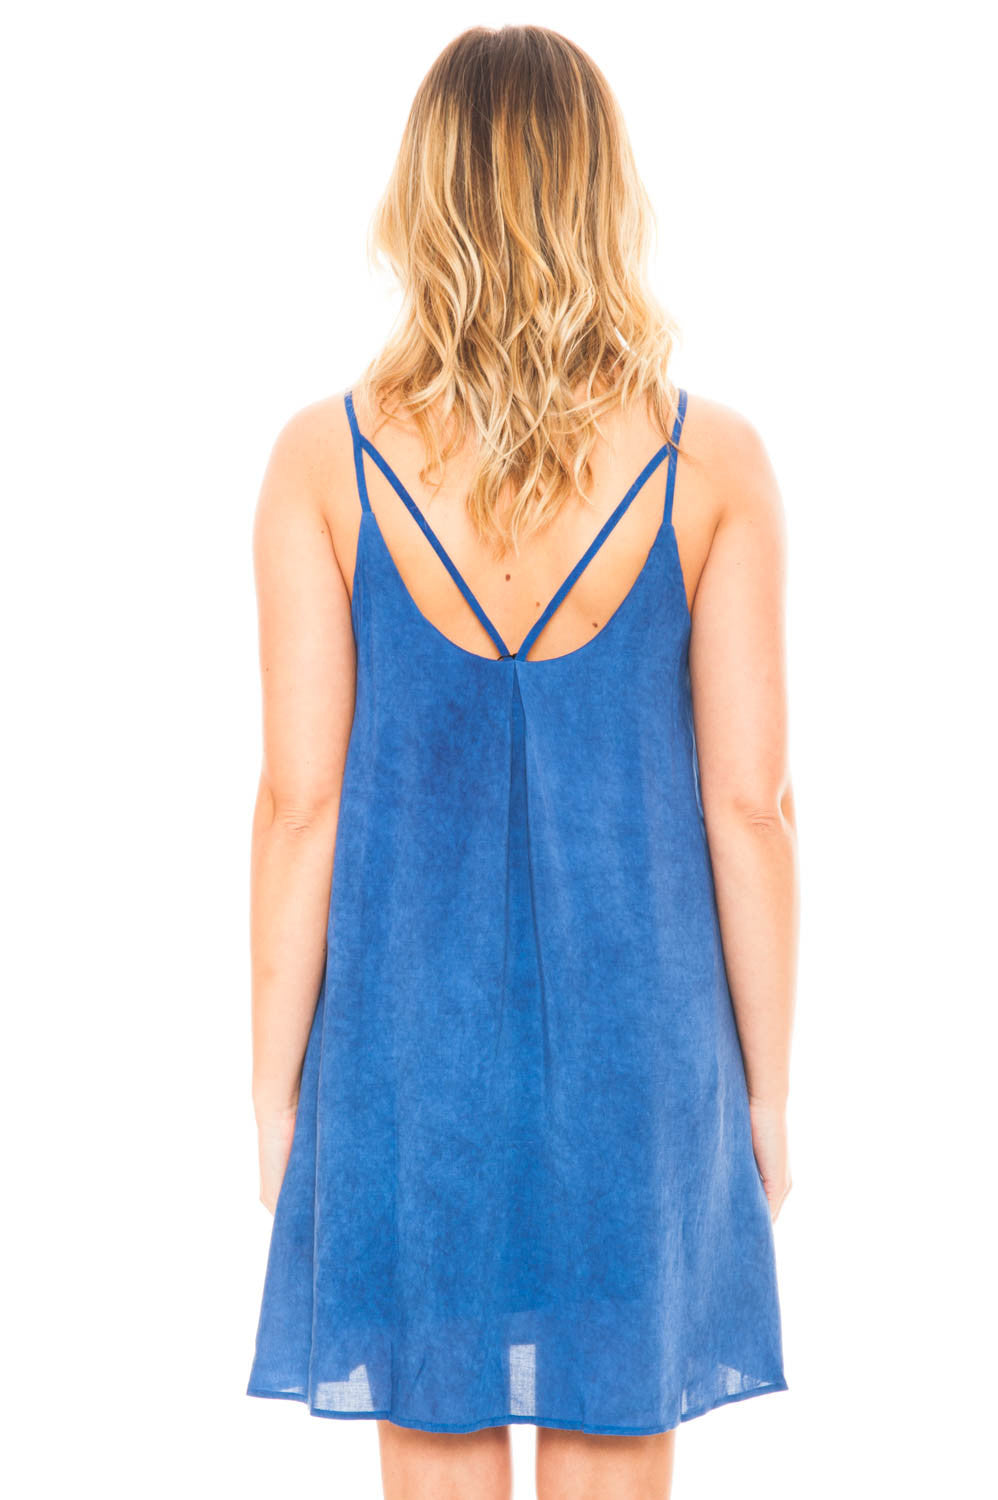 Dress - Fully Lined V-Neck Dress with Strappy Back Detail